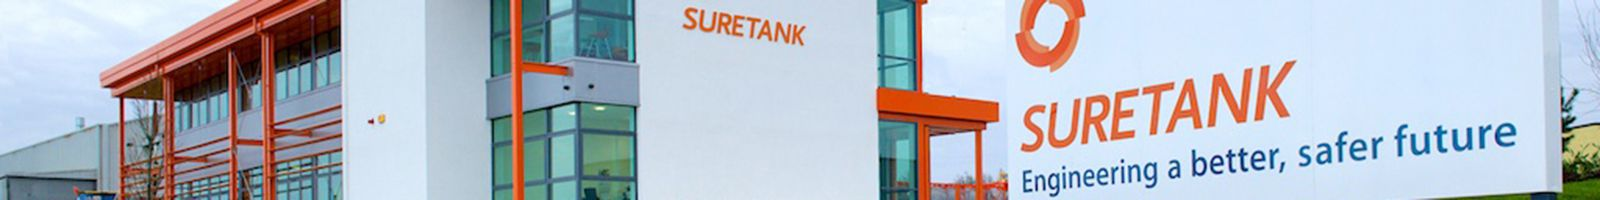 Suretank Corporate Centre